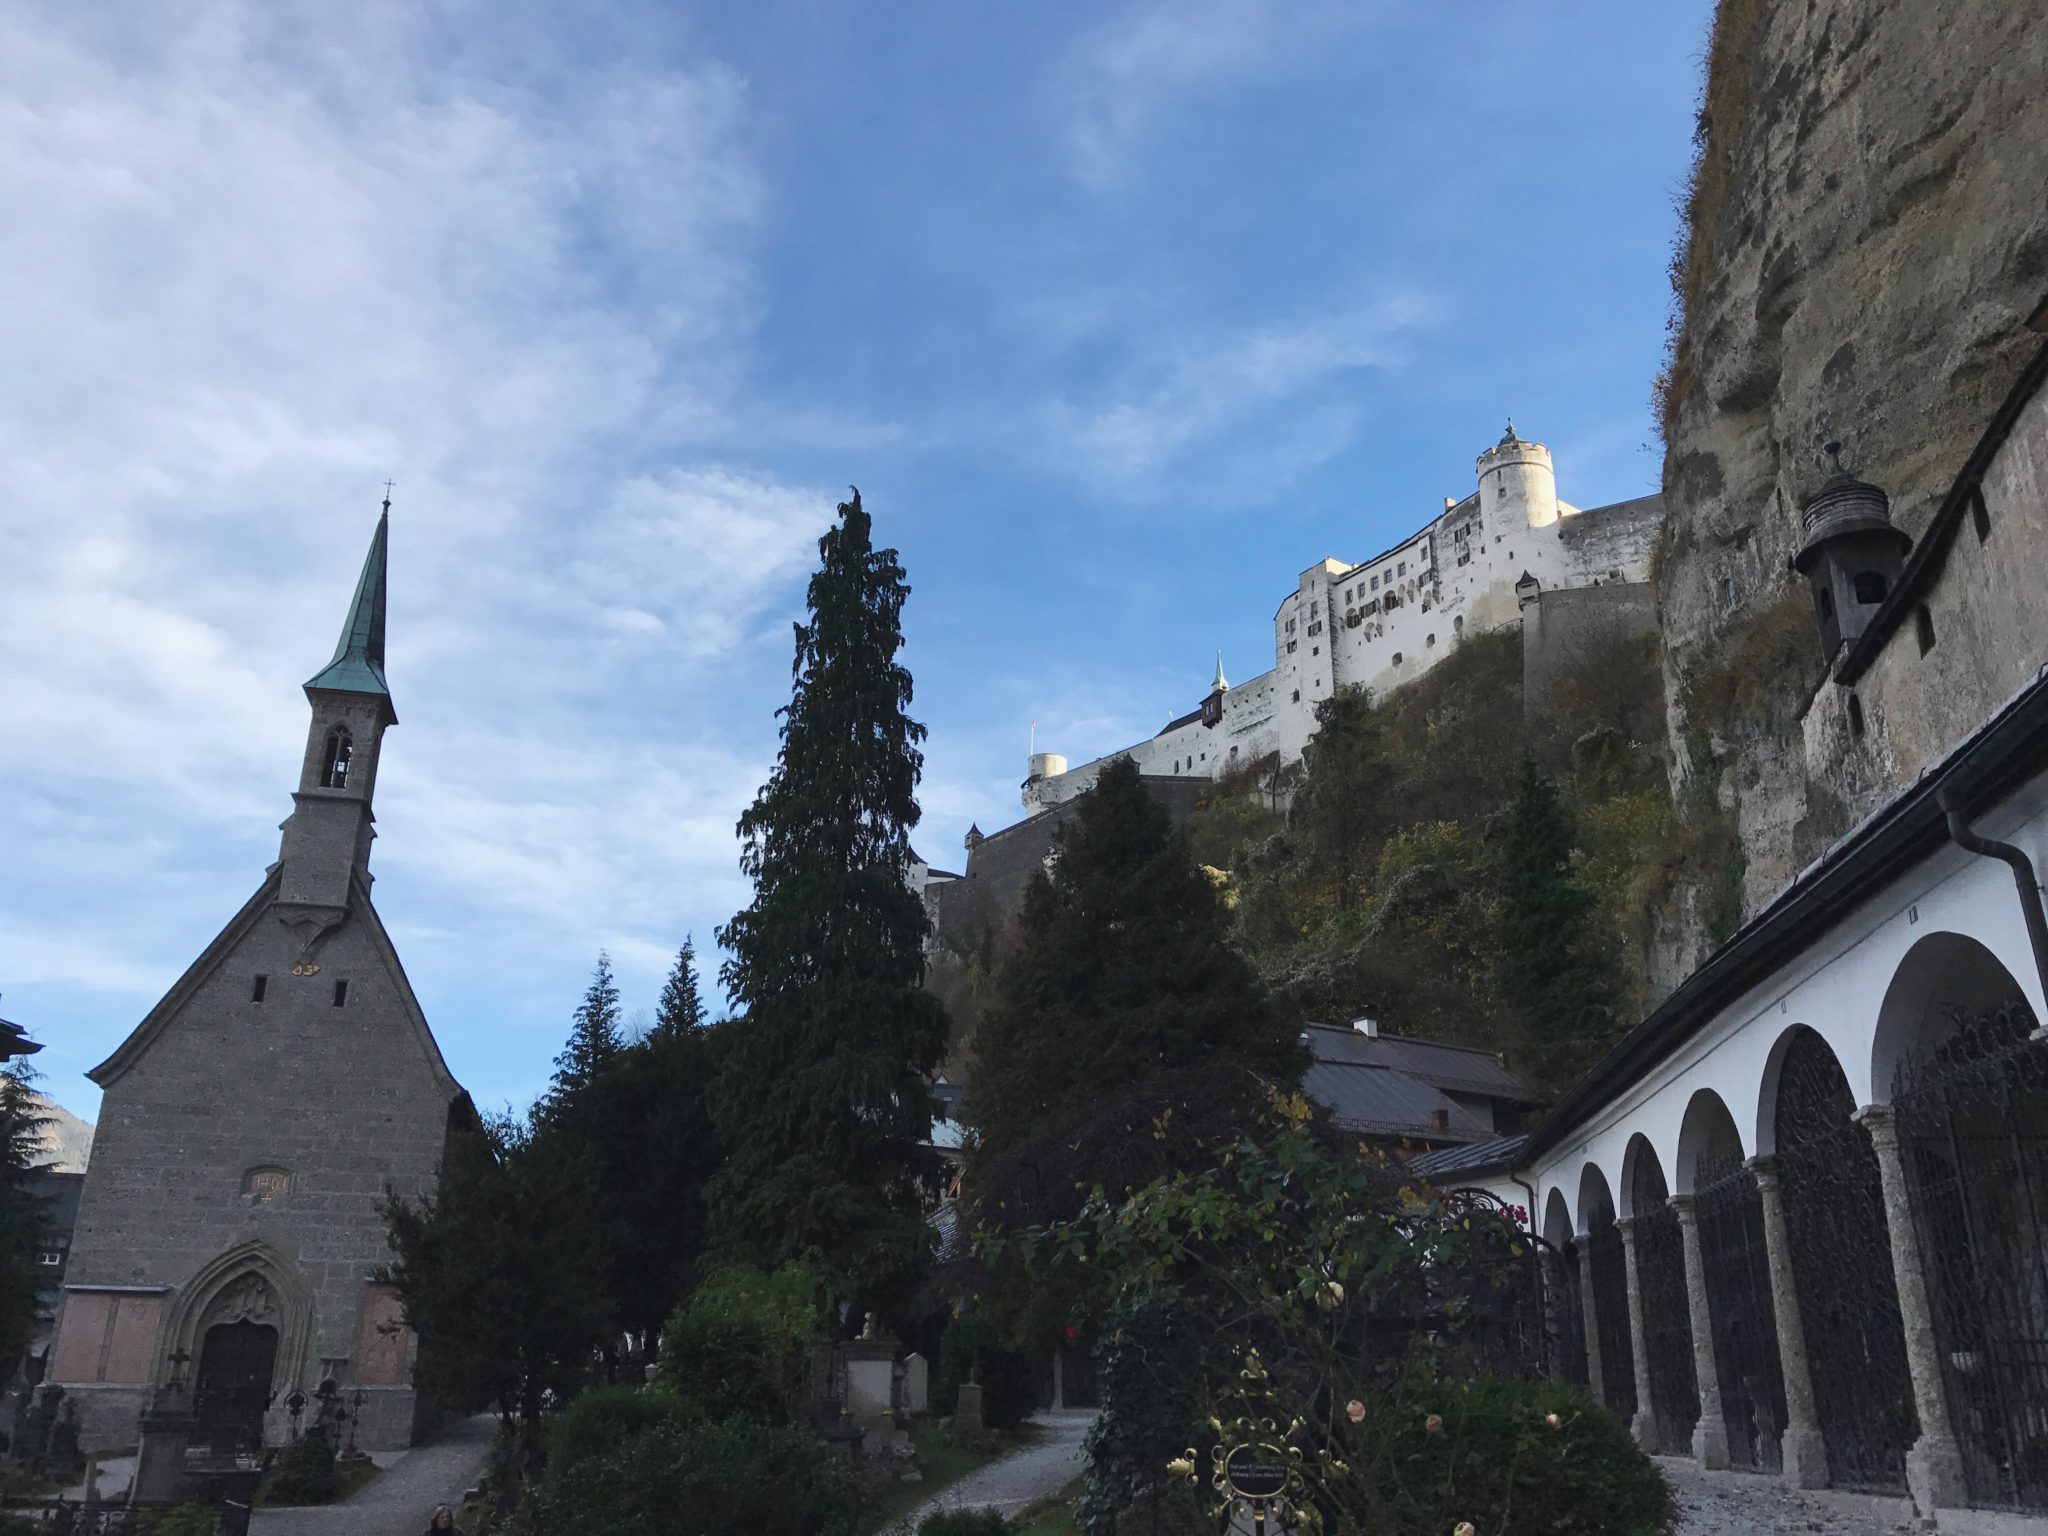 St. Peter's Abbey in Salzburg